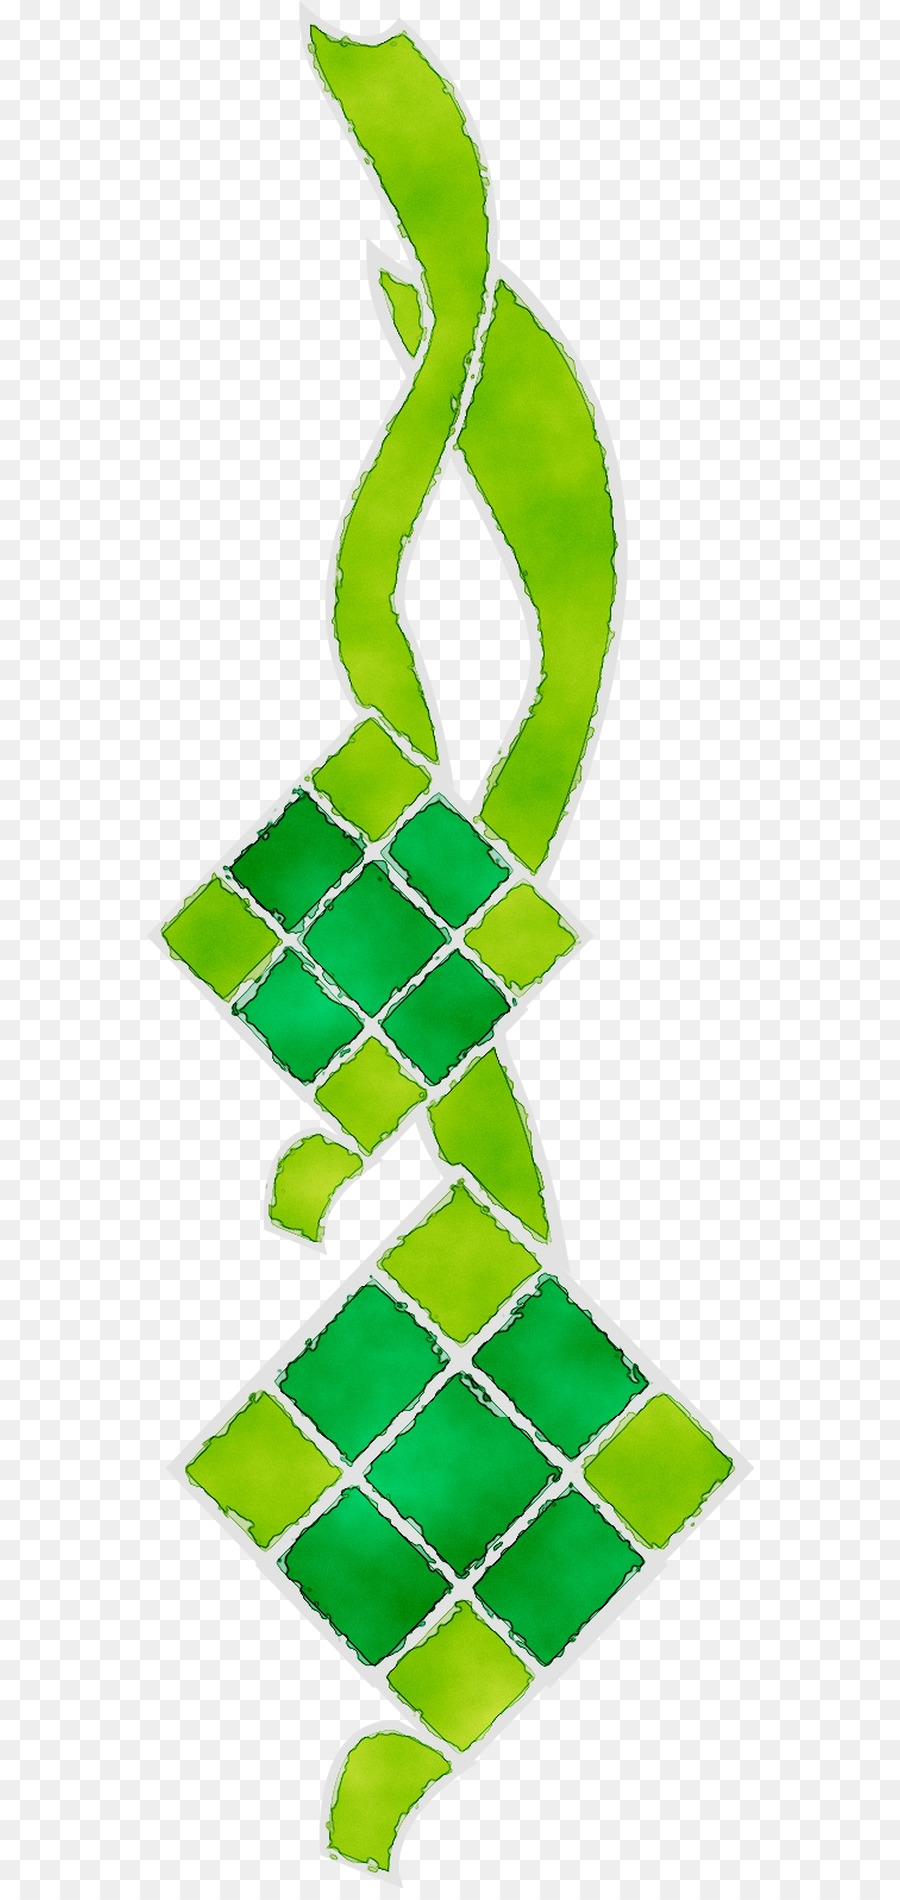 Ketupat Idul Fitri Png : ketupat, fitri, Background, Ketupat, Lebaran, Download, 608*1888, Transparent, Download., CleanPNG, KissPNG